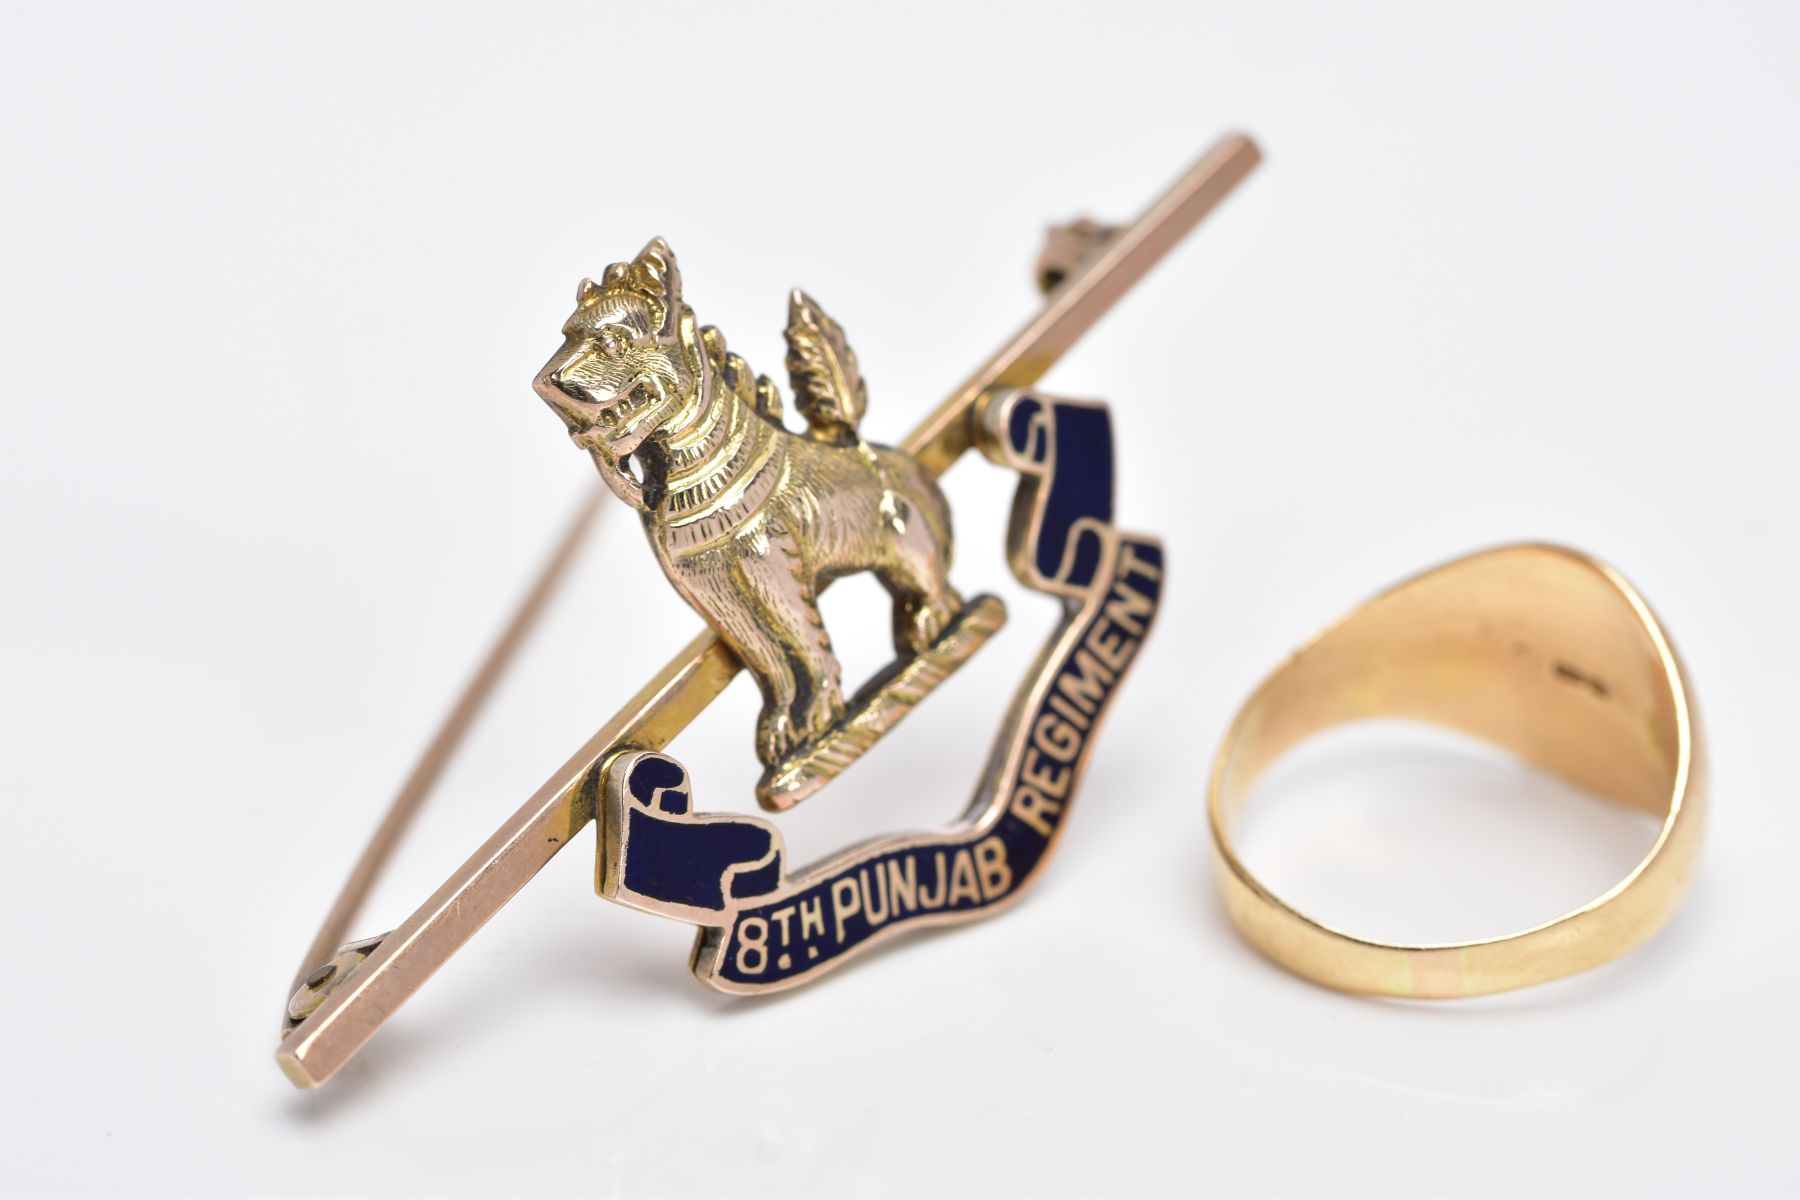 AN 18CT GOLD SIGNET RING AND A YELLOW METAL REGIMENT BADGE, oval signet ring with an engraved - Image 3 of 3